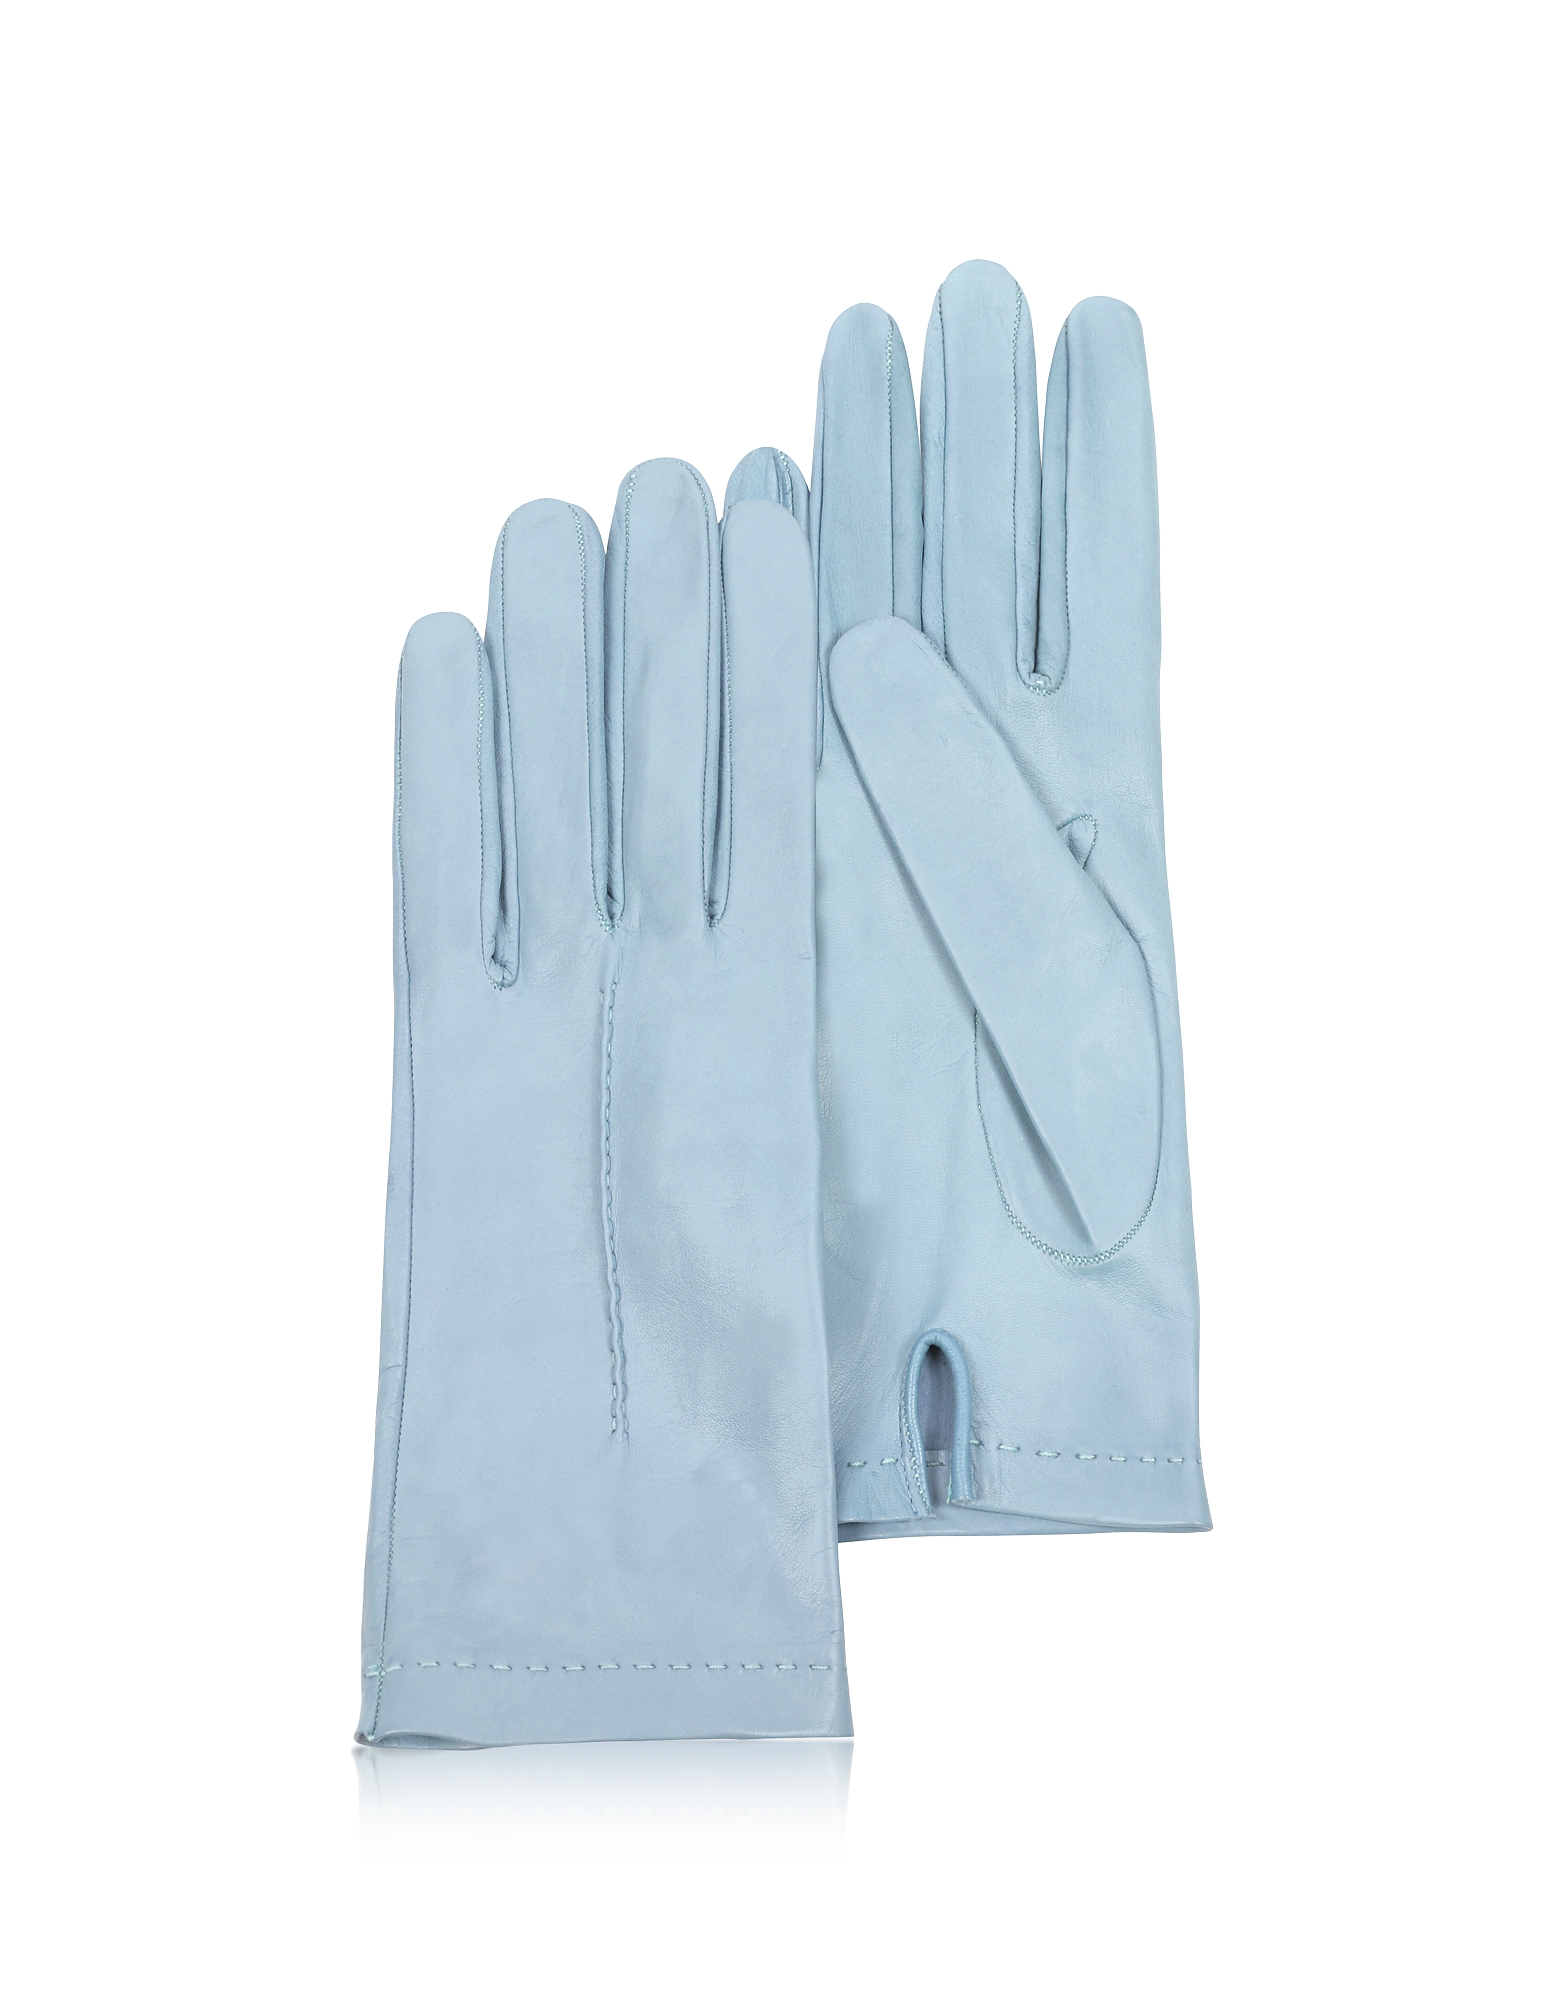 Forzieri Women's Gloves, Women's Sky Blue Unlined Italian Leather Gloves